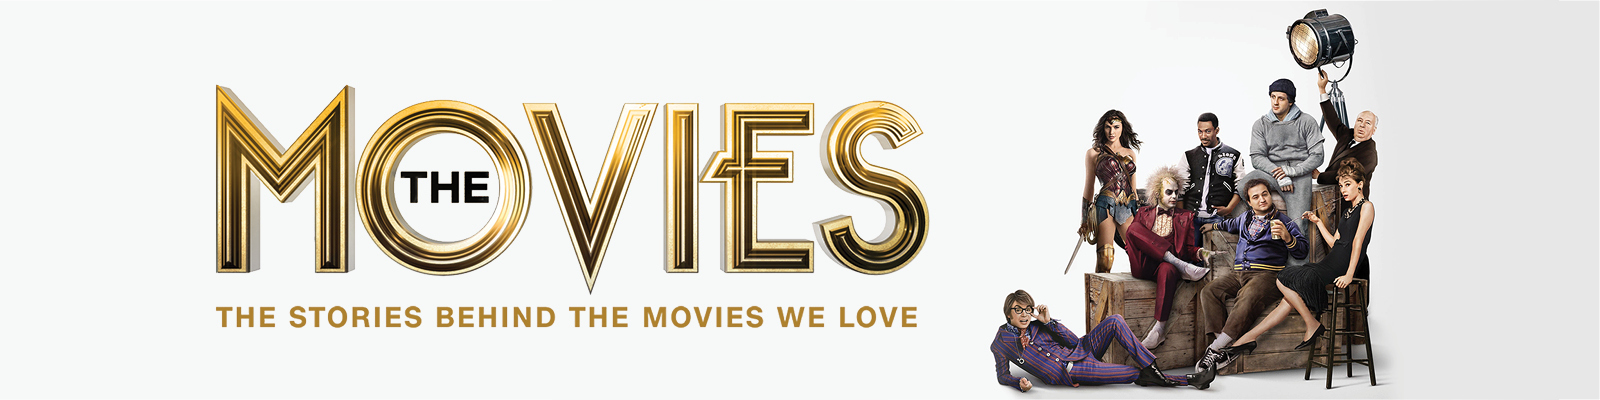 Assorted classic movie characters stand together against a white soundstage background with the words